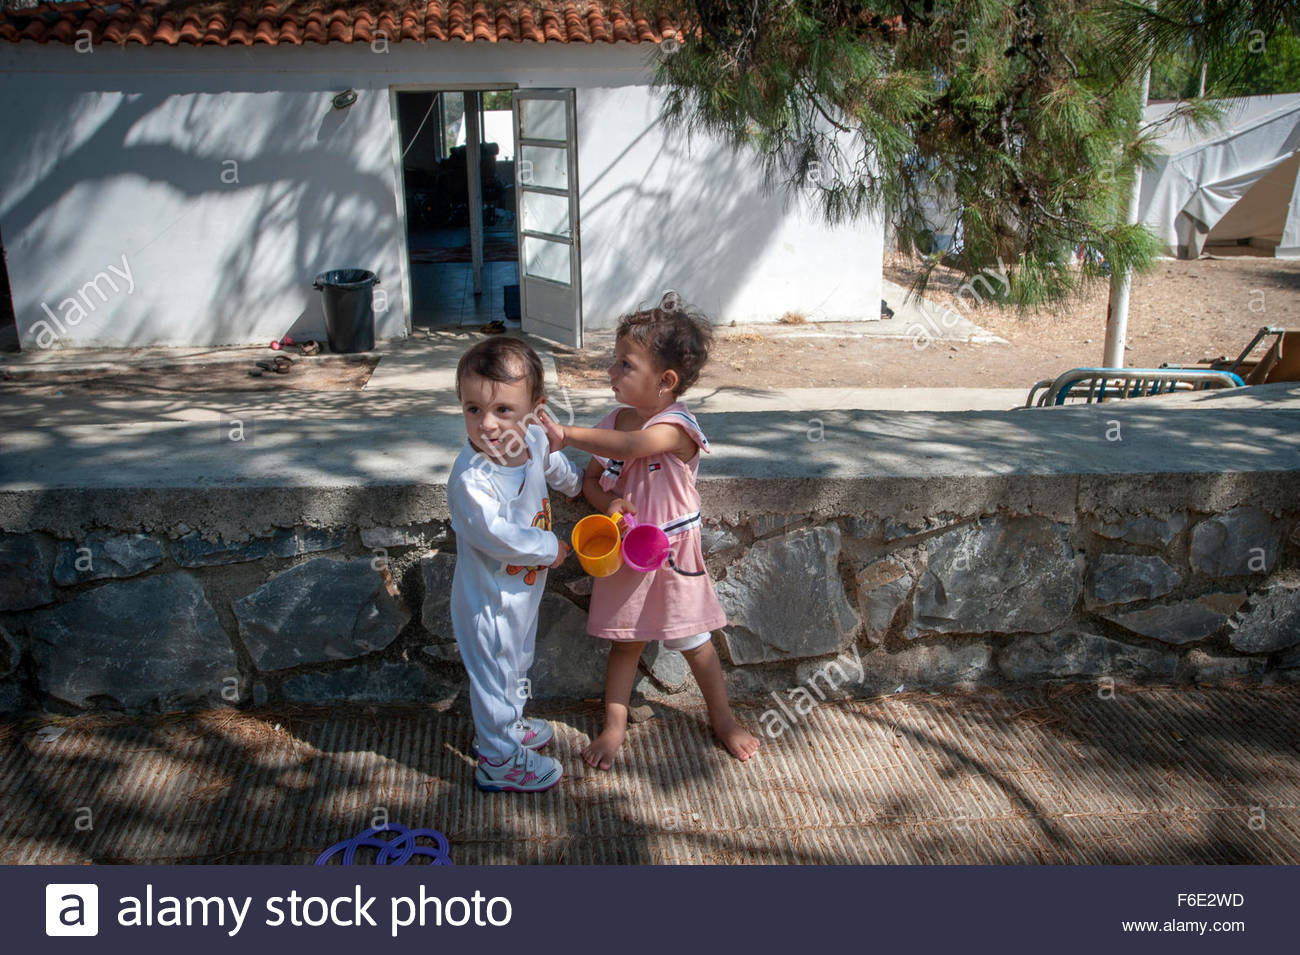 Children playing at PIKPA refugee camp in Lesbos, Greece. PIKPA is run by the 'Village of Altogether'. - Stock Image